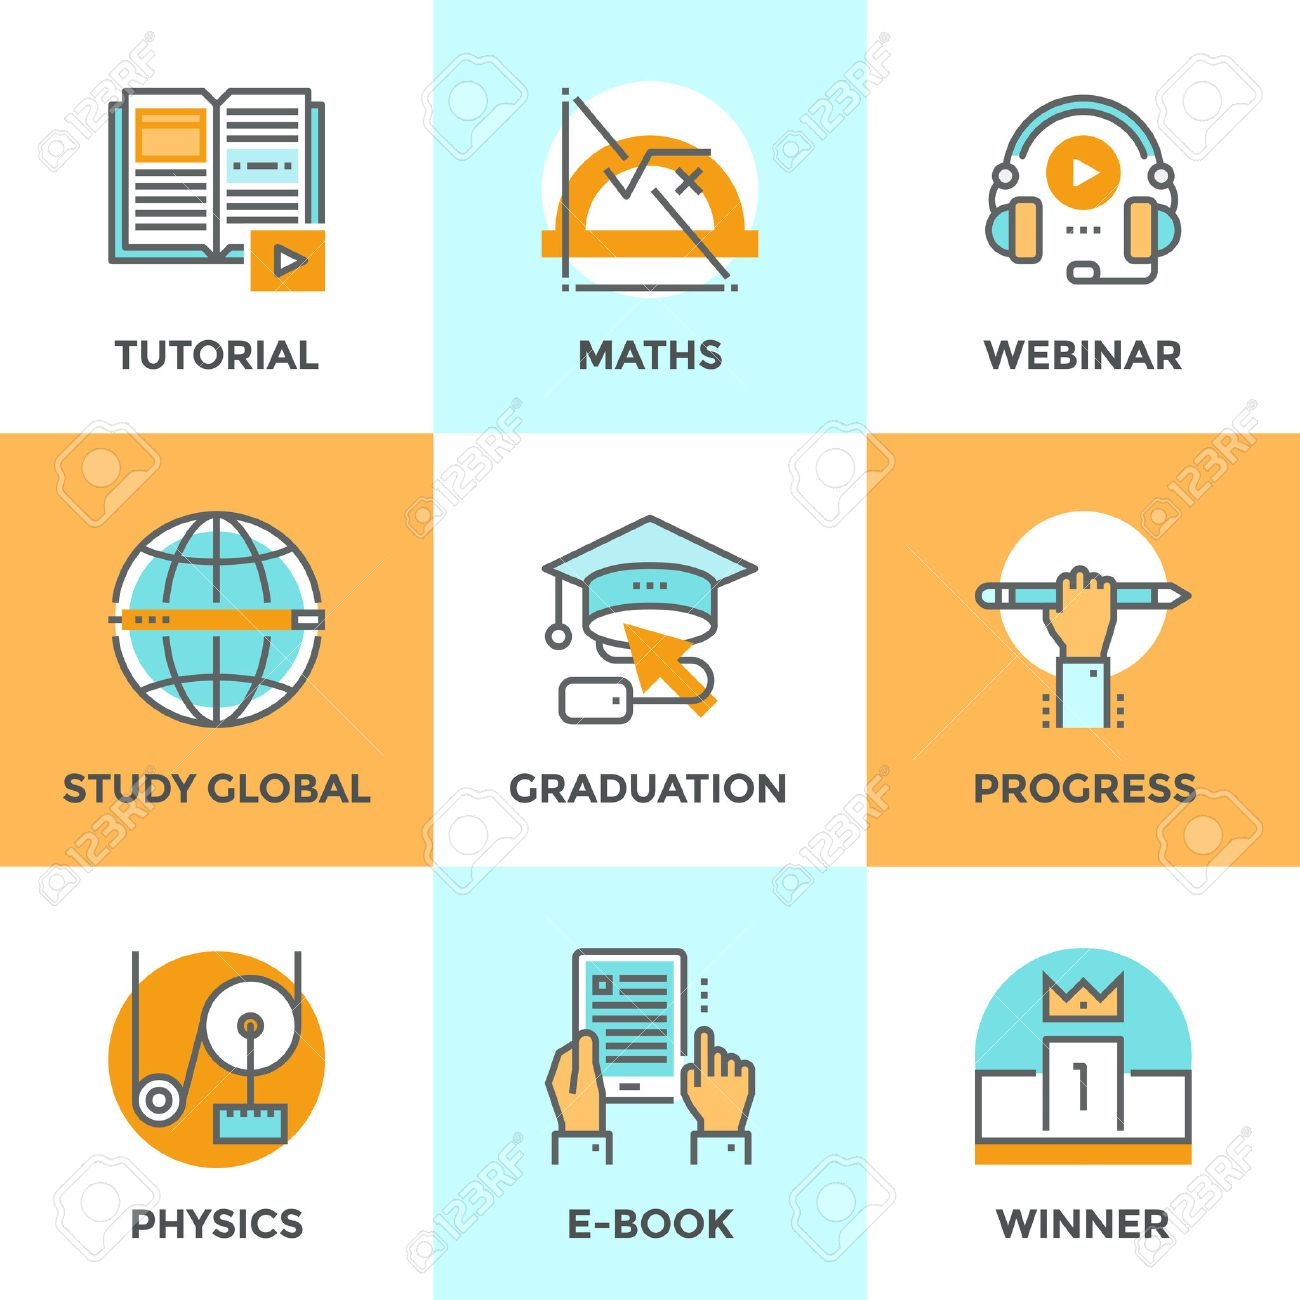 Line icons set with flat design elements of education progress, global study, e-book learning, webinar audio course, winner pedestal, physics and math learn. Modern vector pictogram collection concept. Stock Vector - 42877652